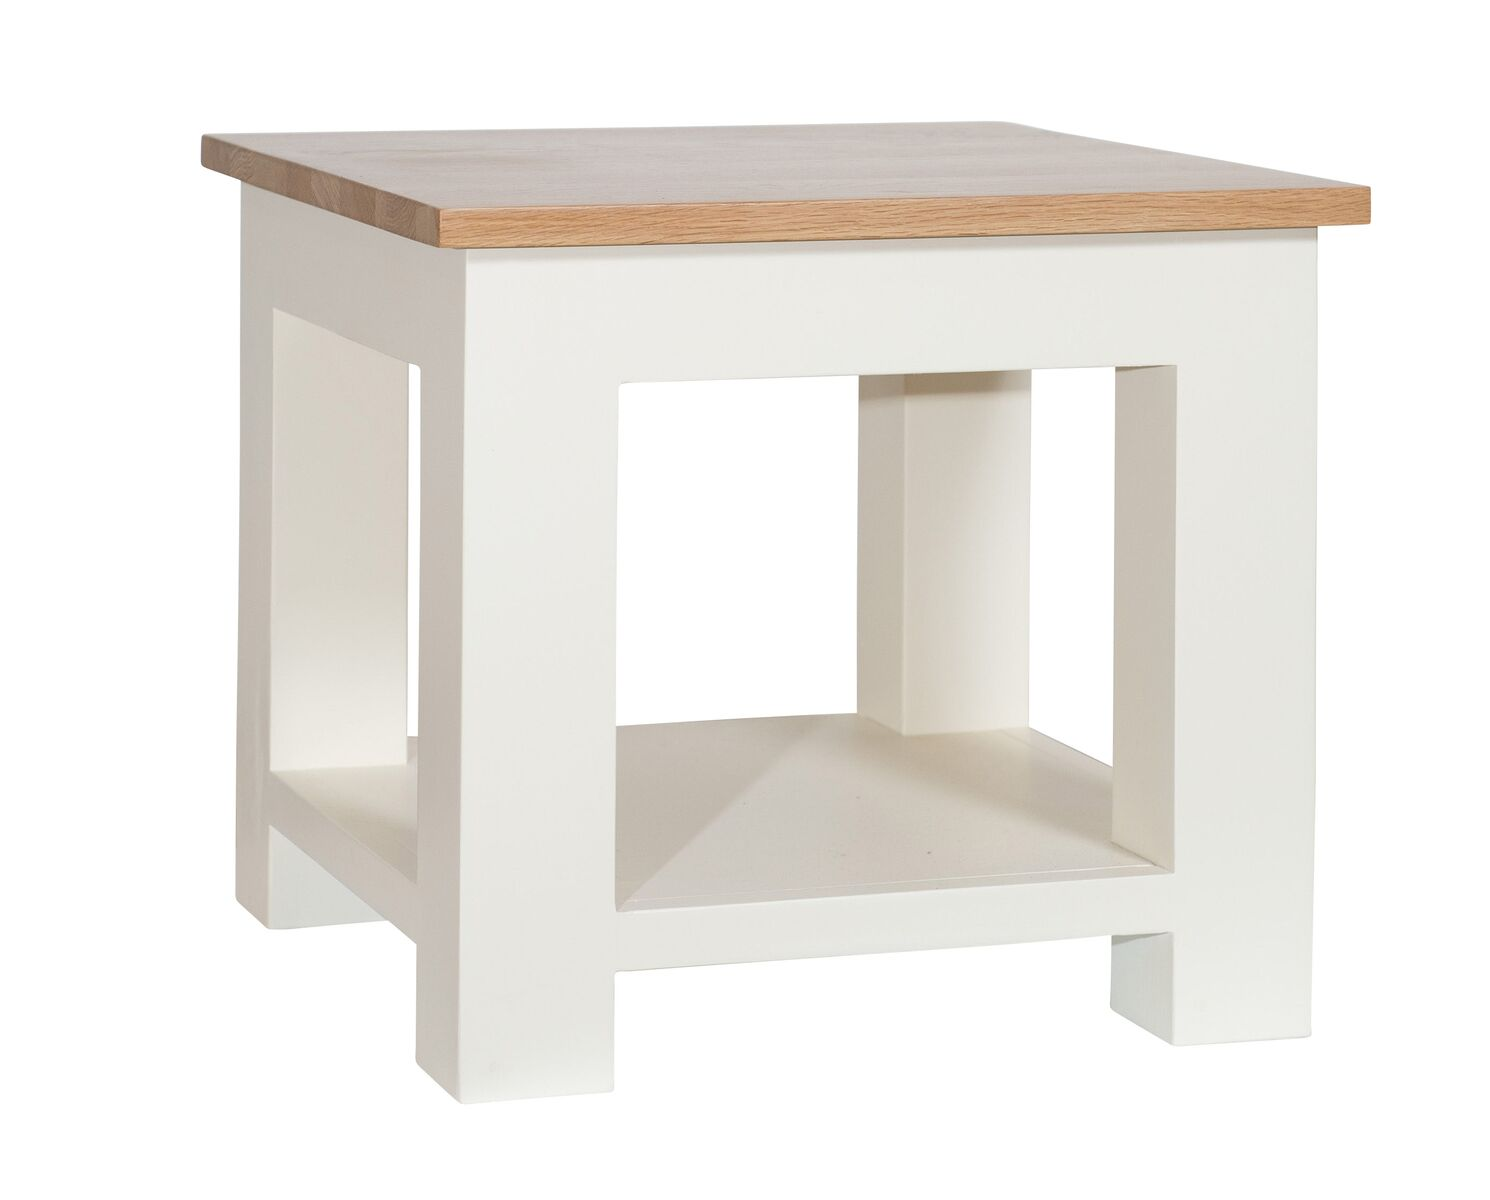 Simply Oak in Cream Lamp Table With Shelf